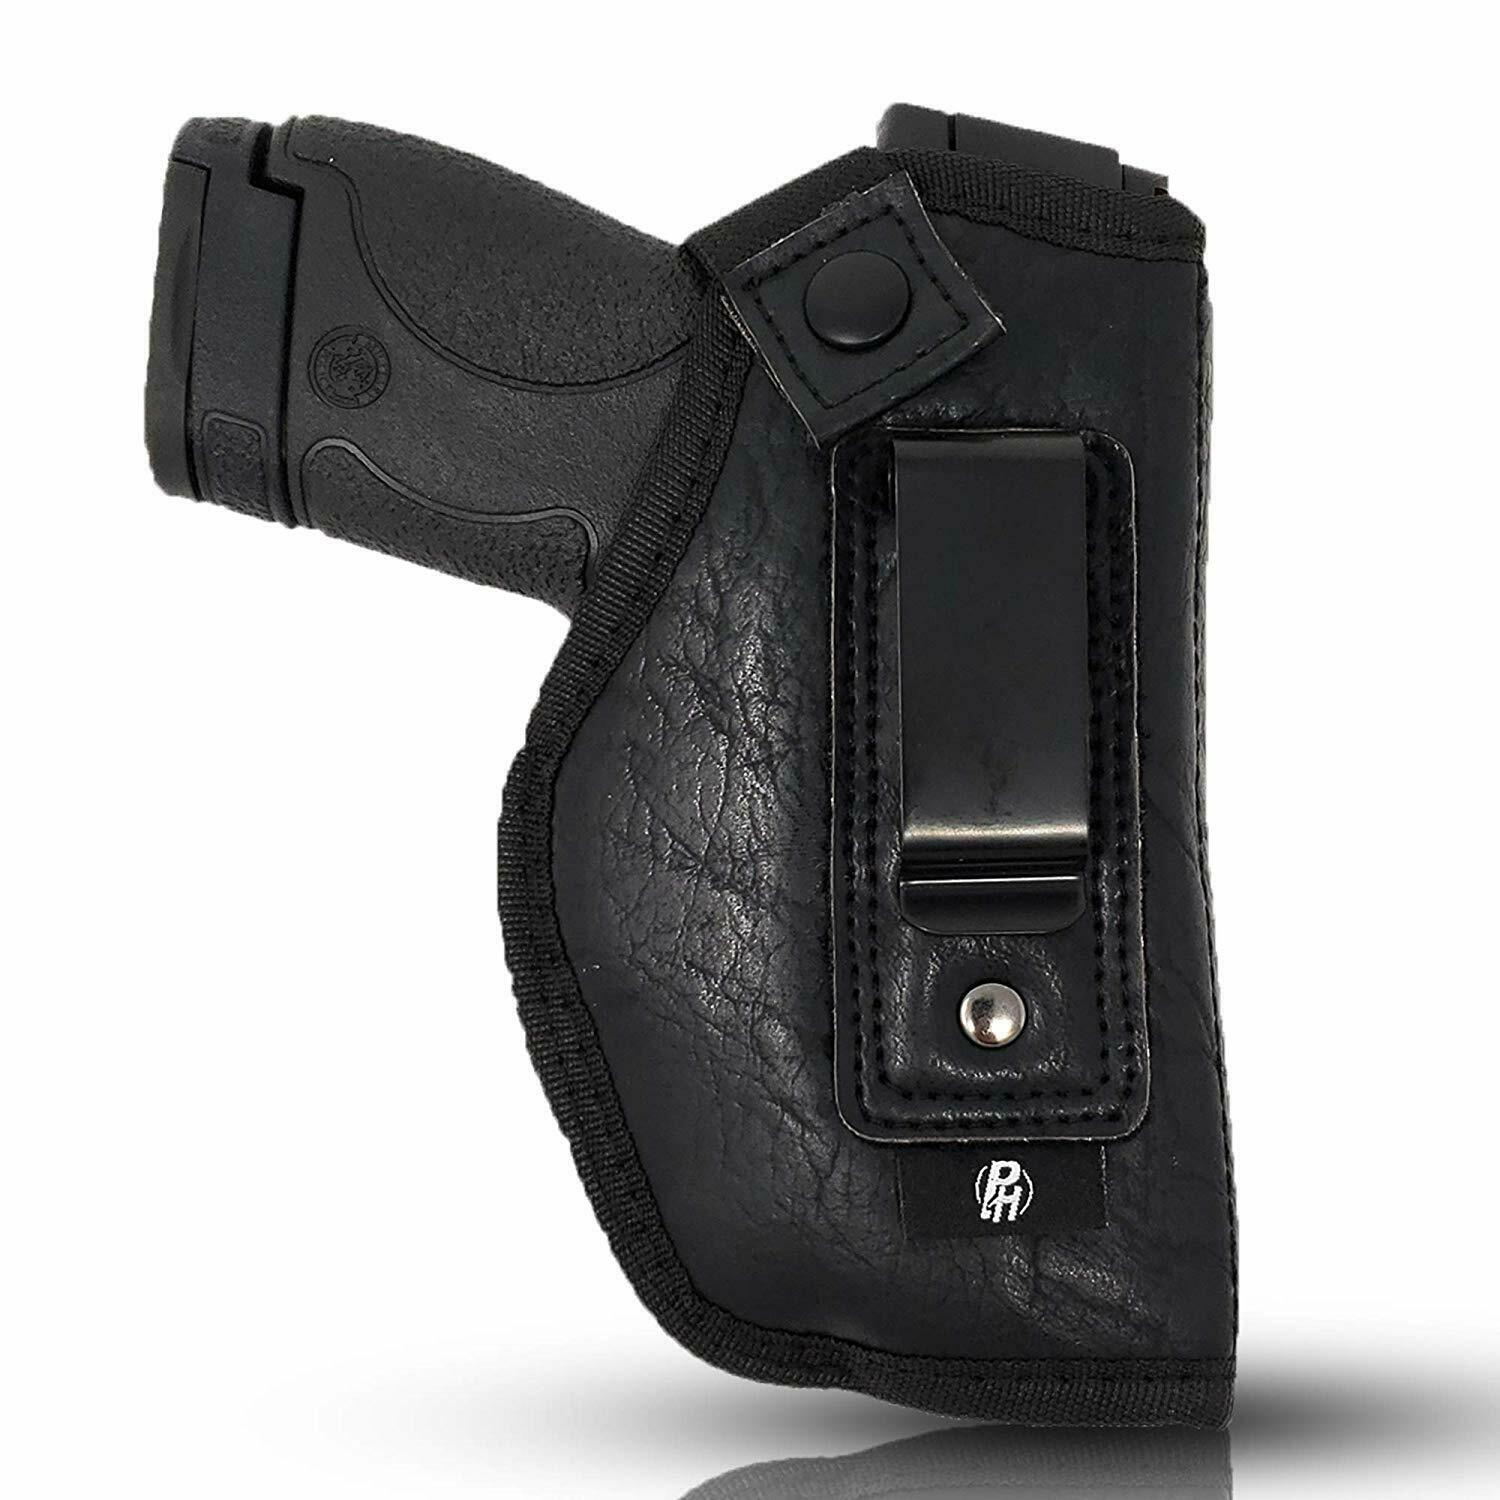 IWB Gun Holster by PH - Best Concealed Carry Custom Fit | So